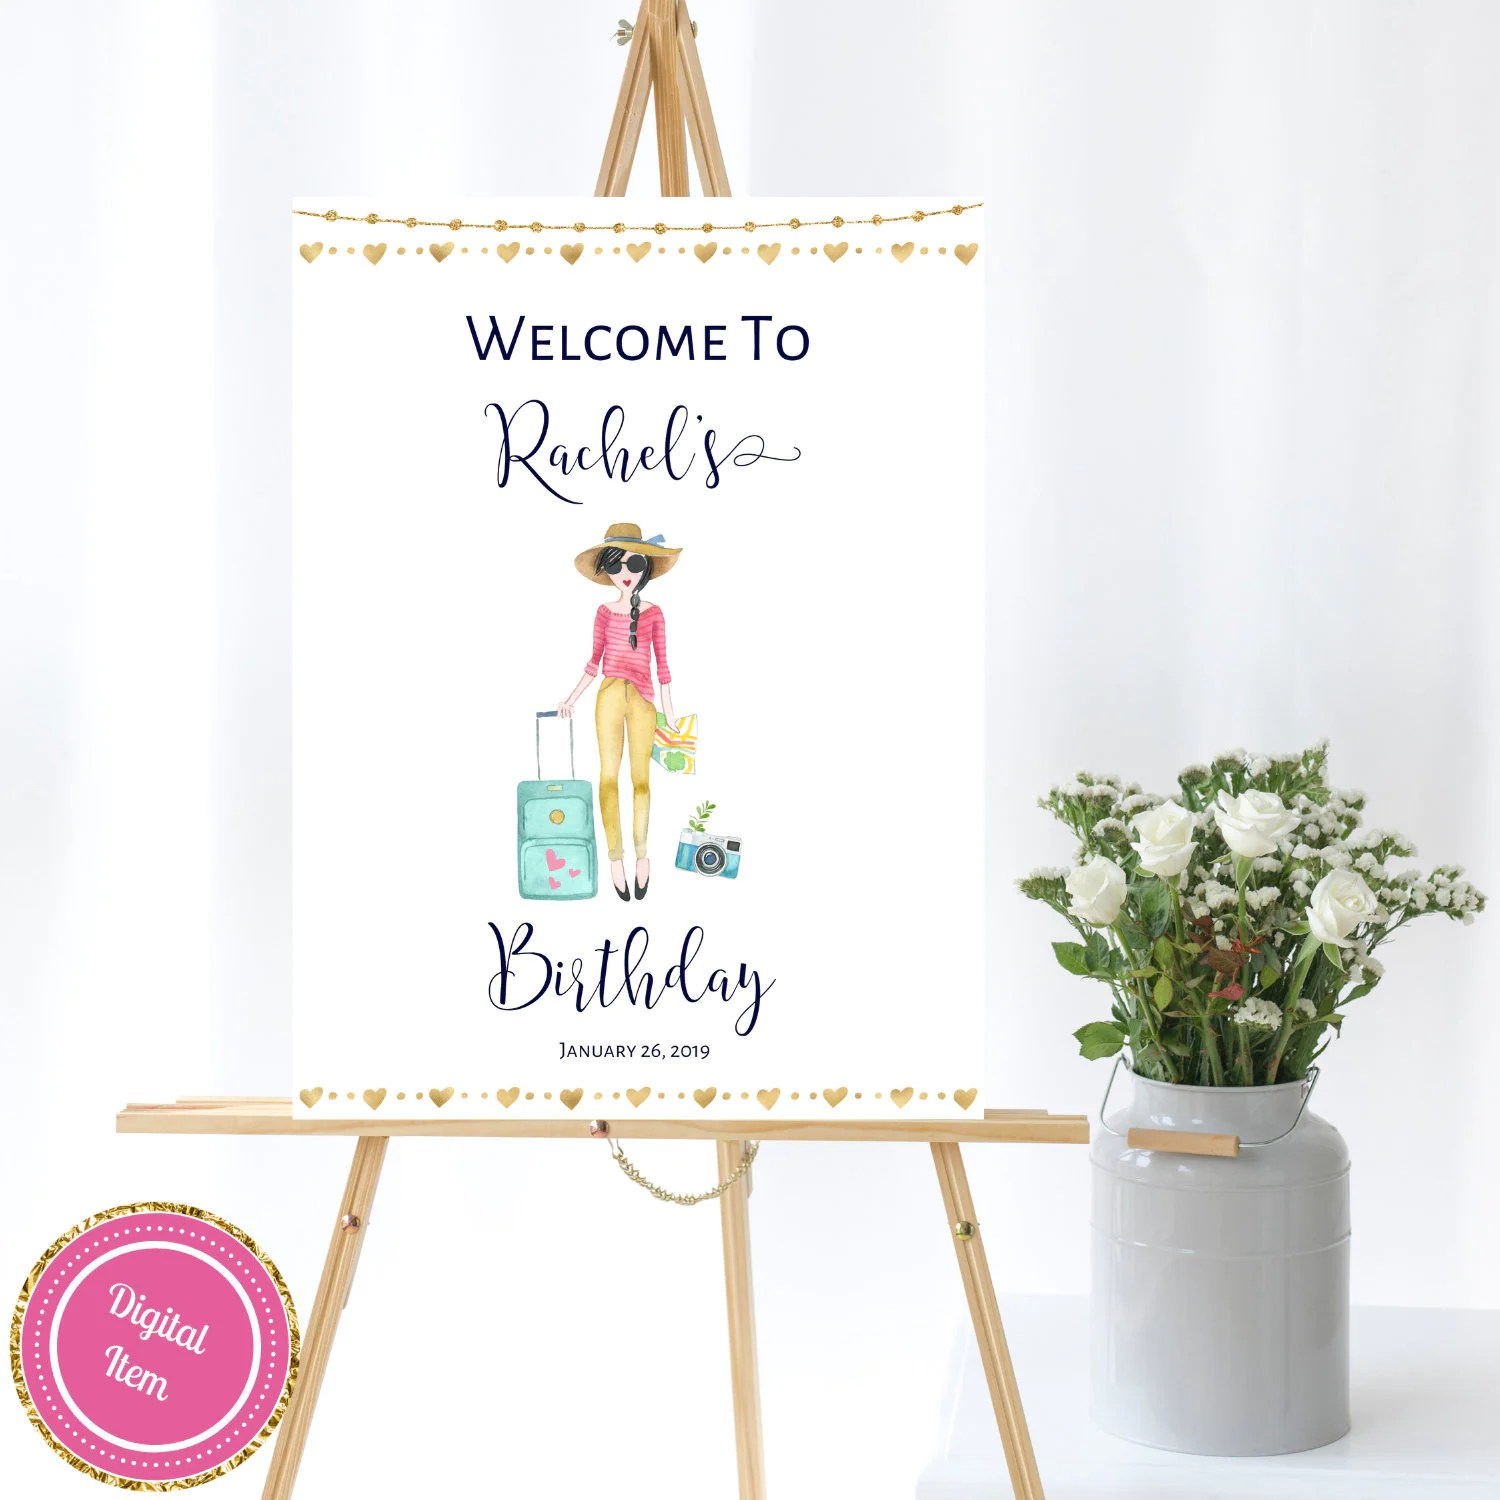 Travel Theme Ideas Travel Theme Birthday Welcome Sign Personalized Adventure Theme Birthday Party Birthday Party Ideas Travel Inspired Party Decor Tt1